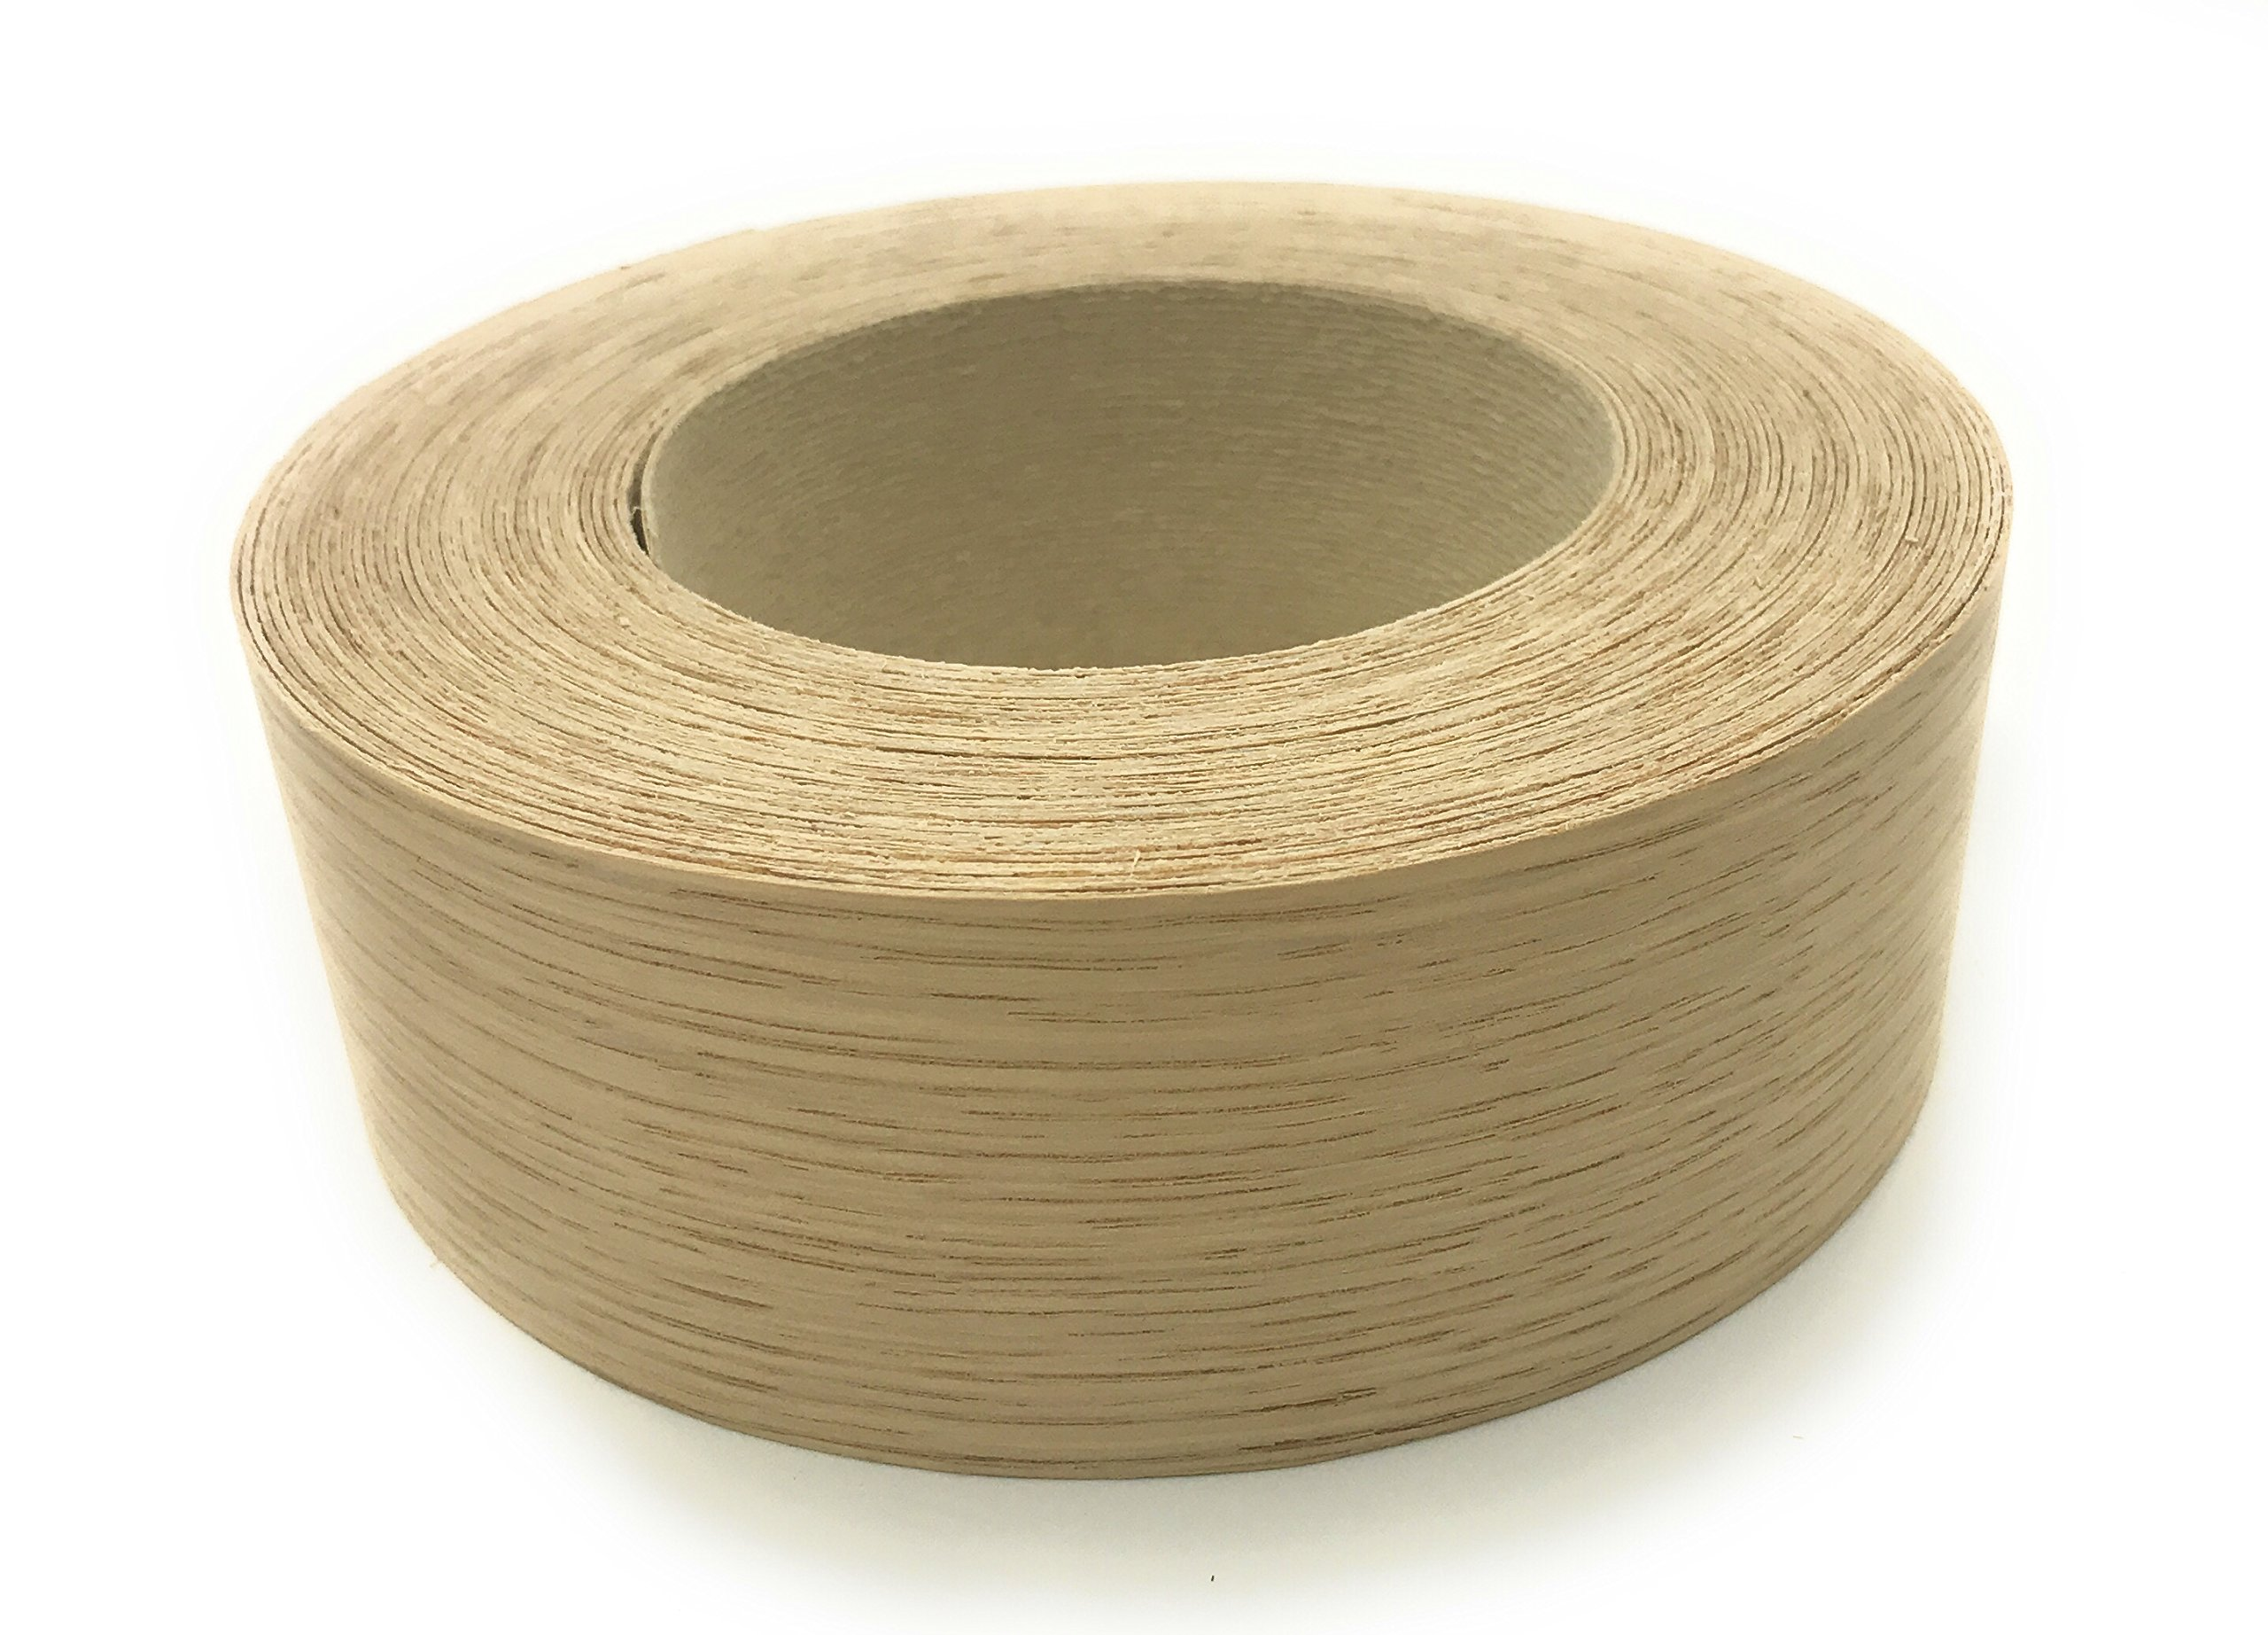 White Oak 1 1/2'' X 50' Roll, Wood Veneer Edgebanding Preglued - Flexible Wood Tape, Easy Application Iron On with Hot Melt Adhesive. Smooth Sanded Finish. Made in USA by Edge Supply